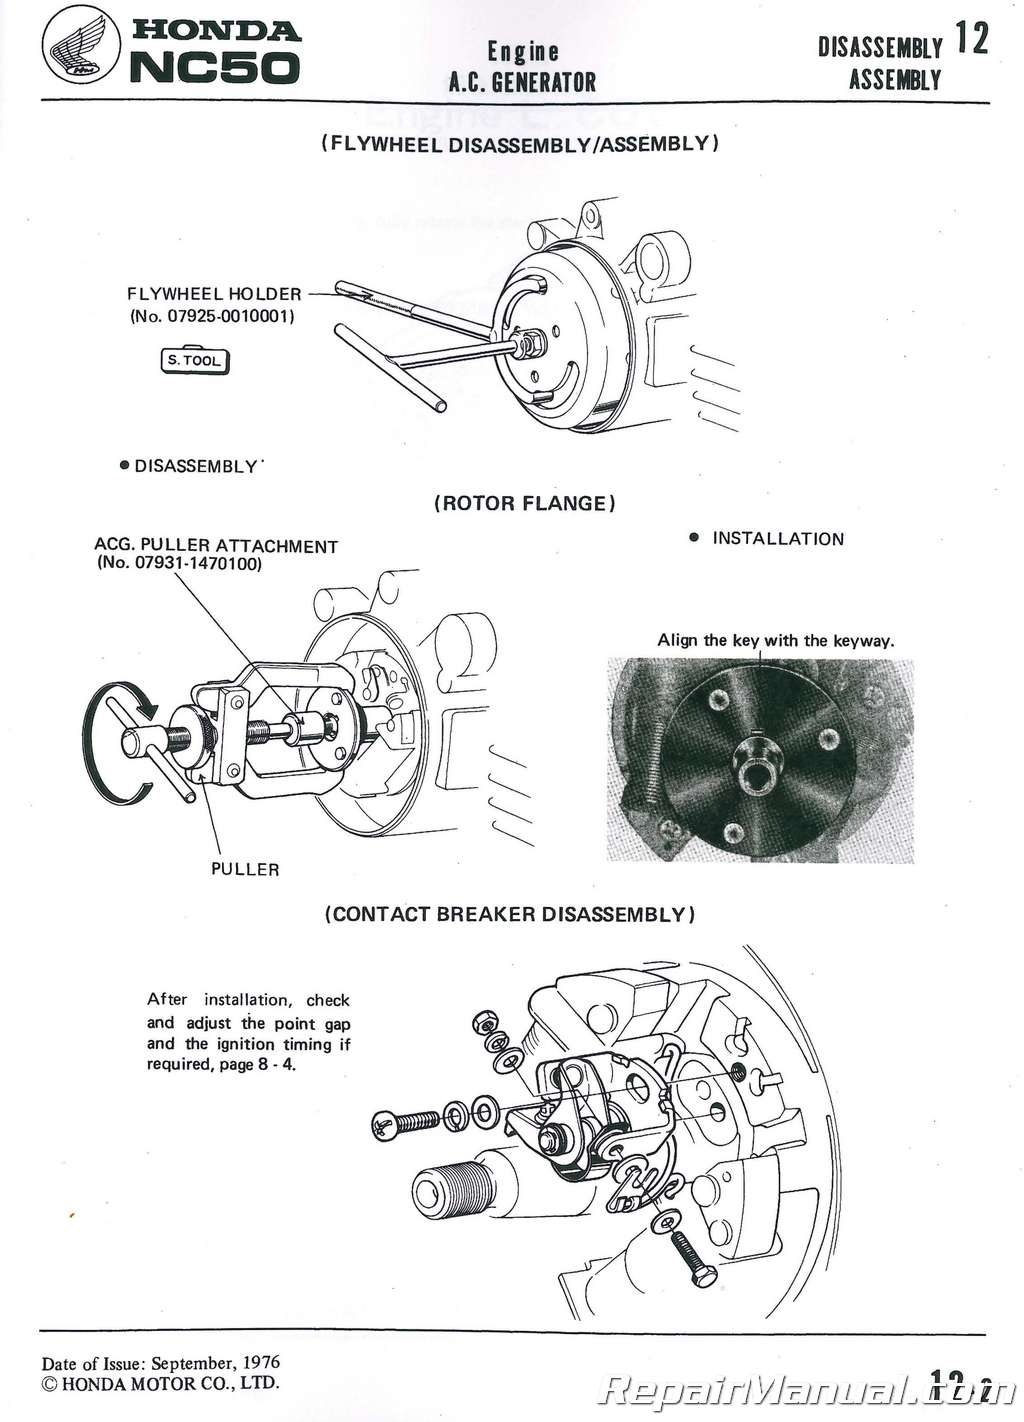 1977-1983 Honda NA NC50 EXPRESS Scooter Shop Manual